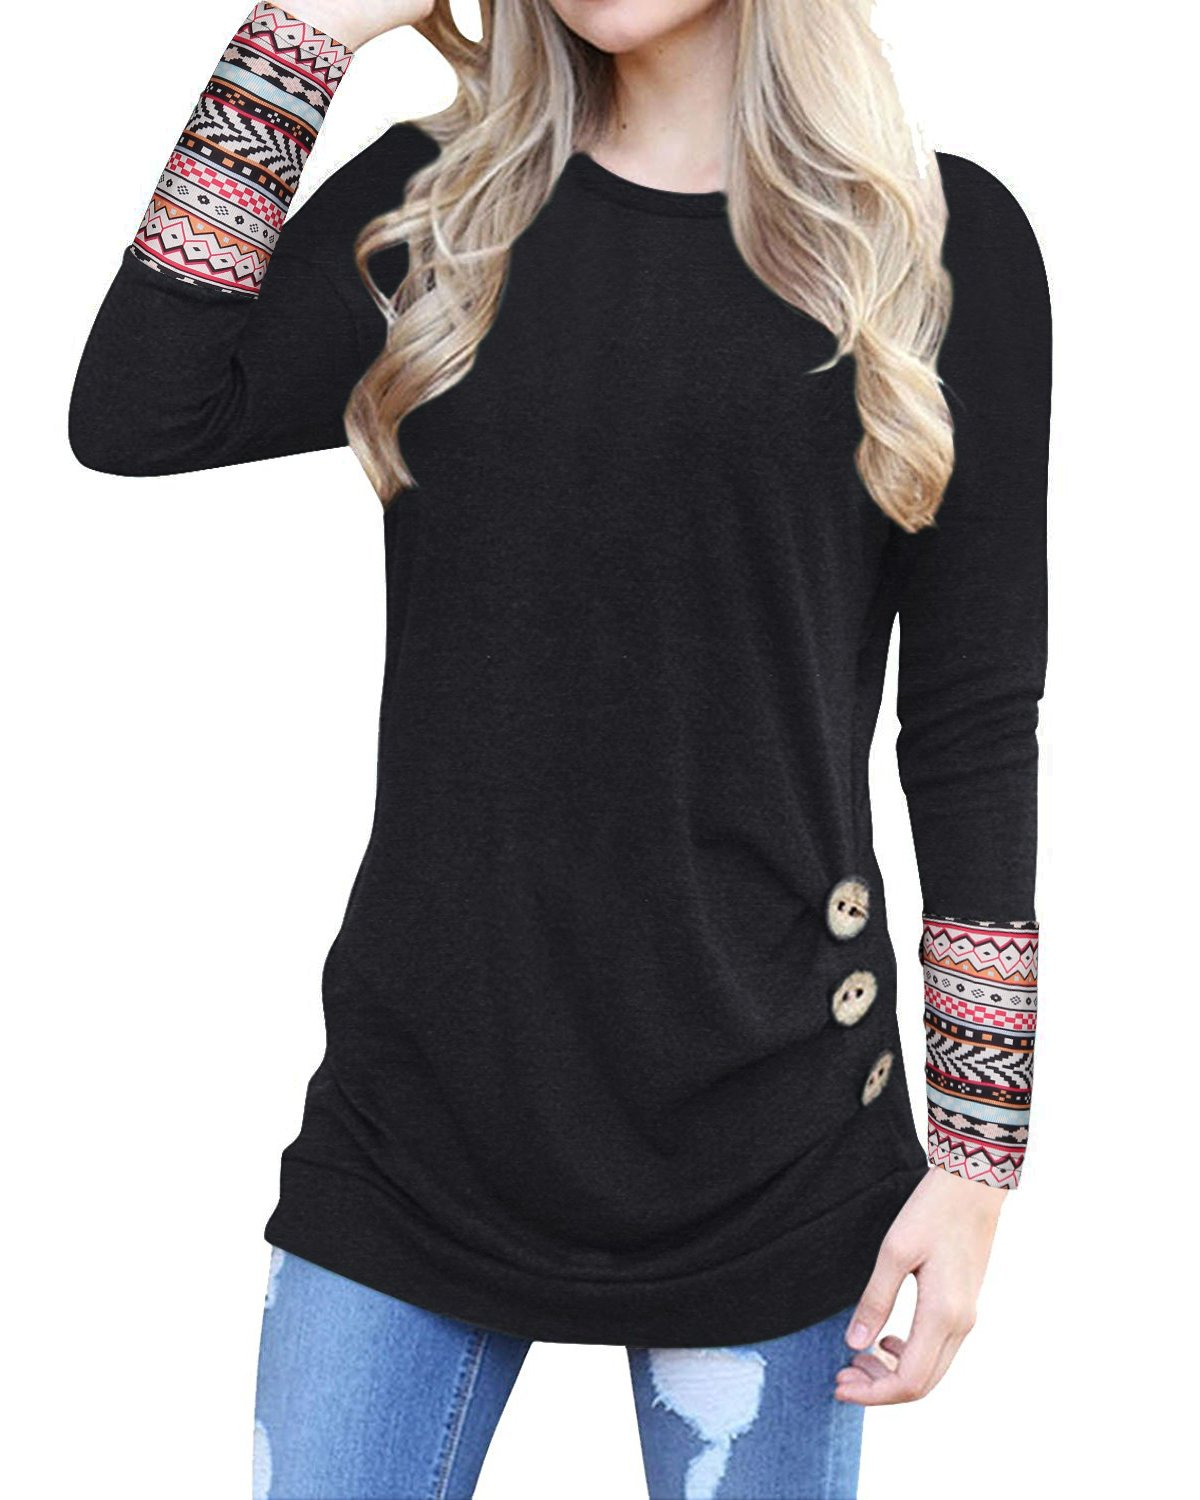 KILIG Long Sleeve Tunic for Women O-Neck Patchwork Casual Loose Blouse Button Side Tunic Tops(Black,L) by KILIG (Image #1)